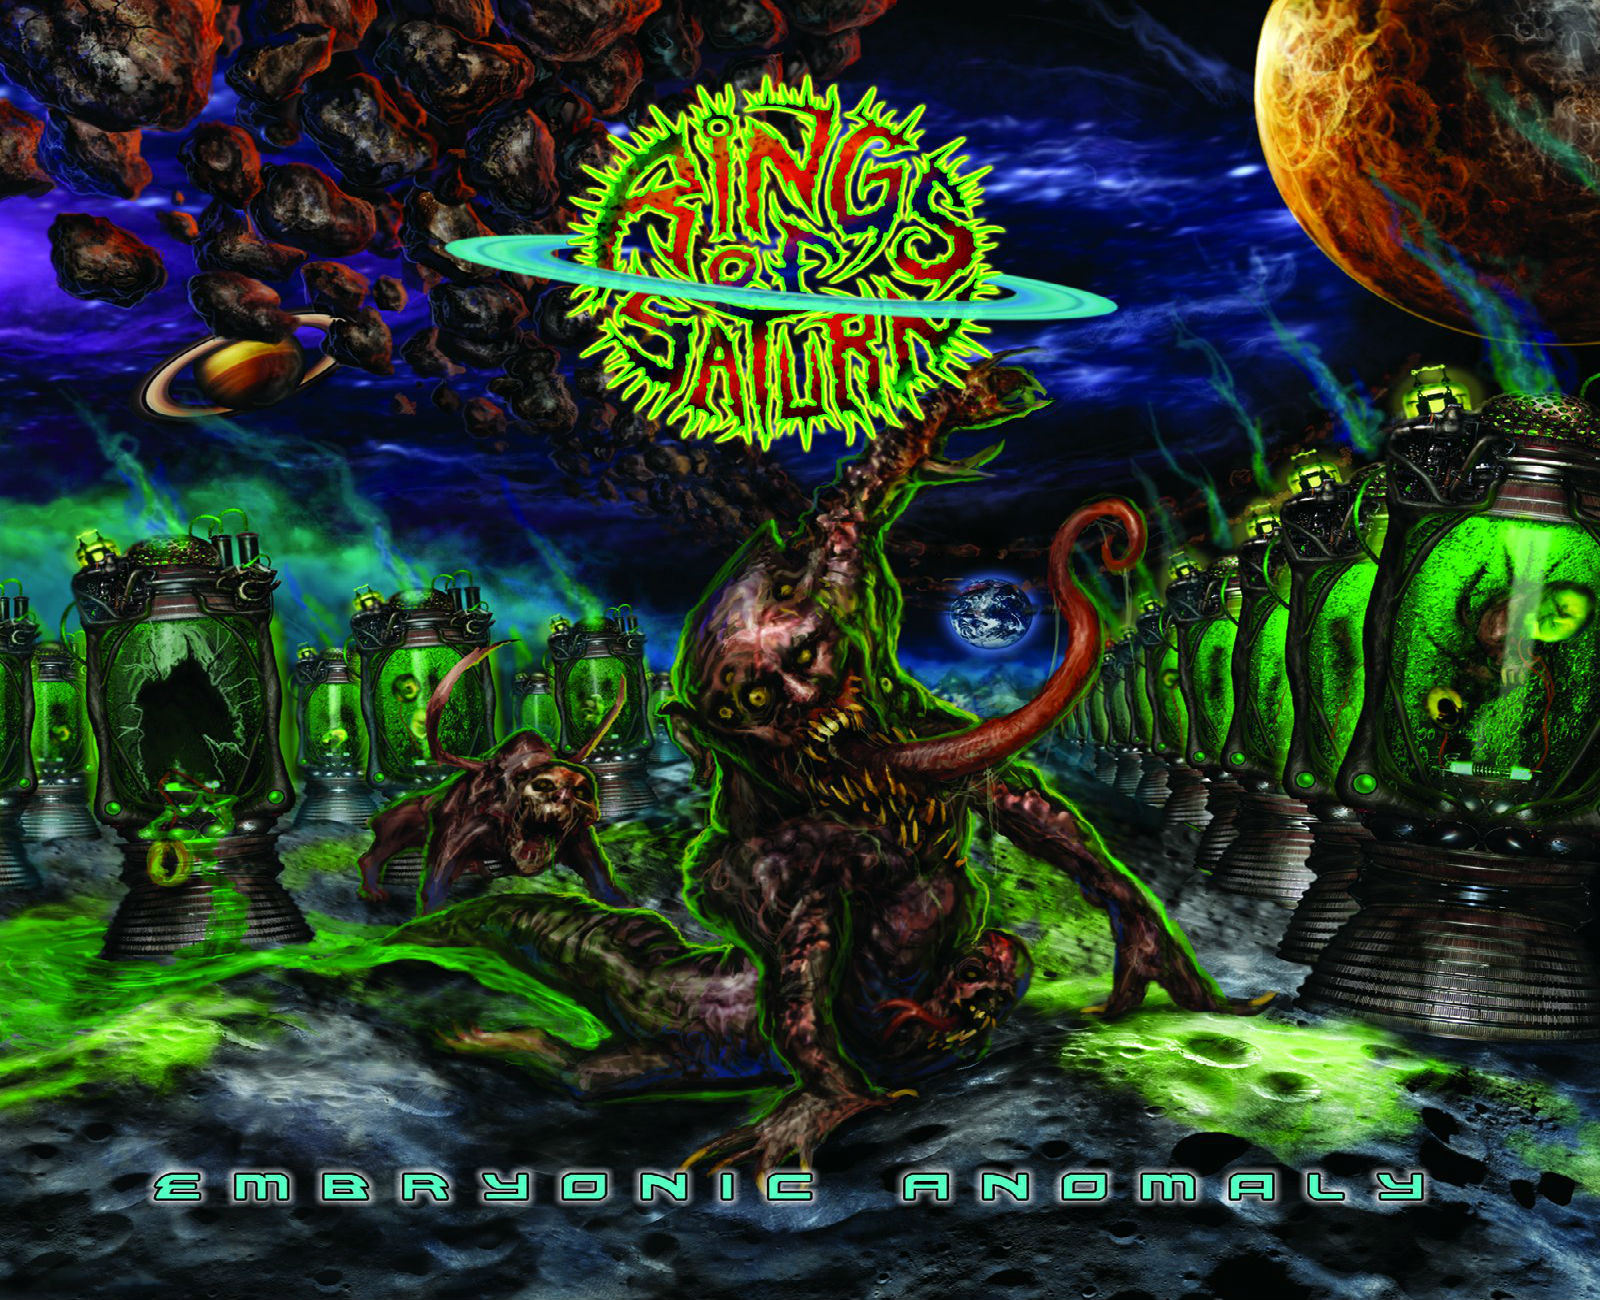 rings of saturn death metal metalcore dark wallpaper